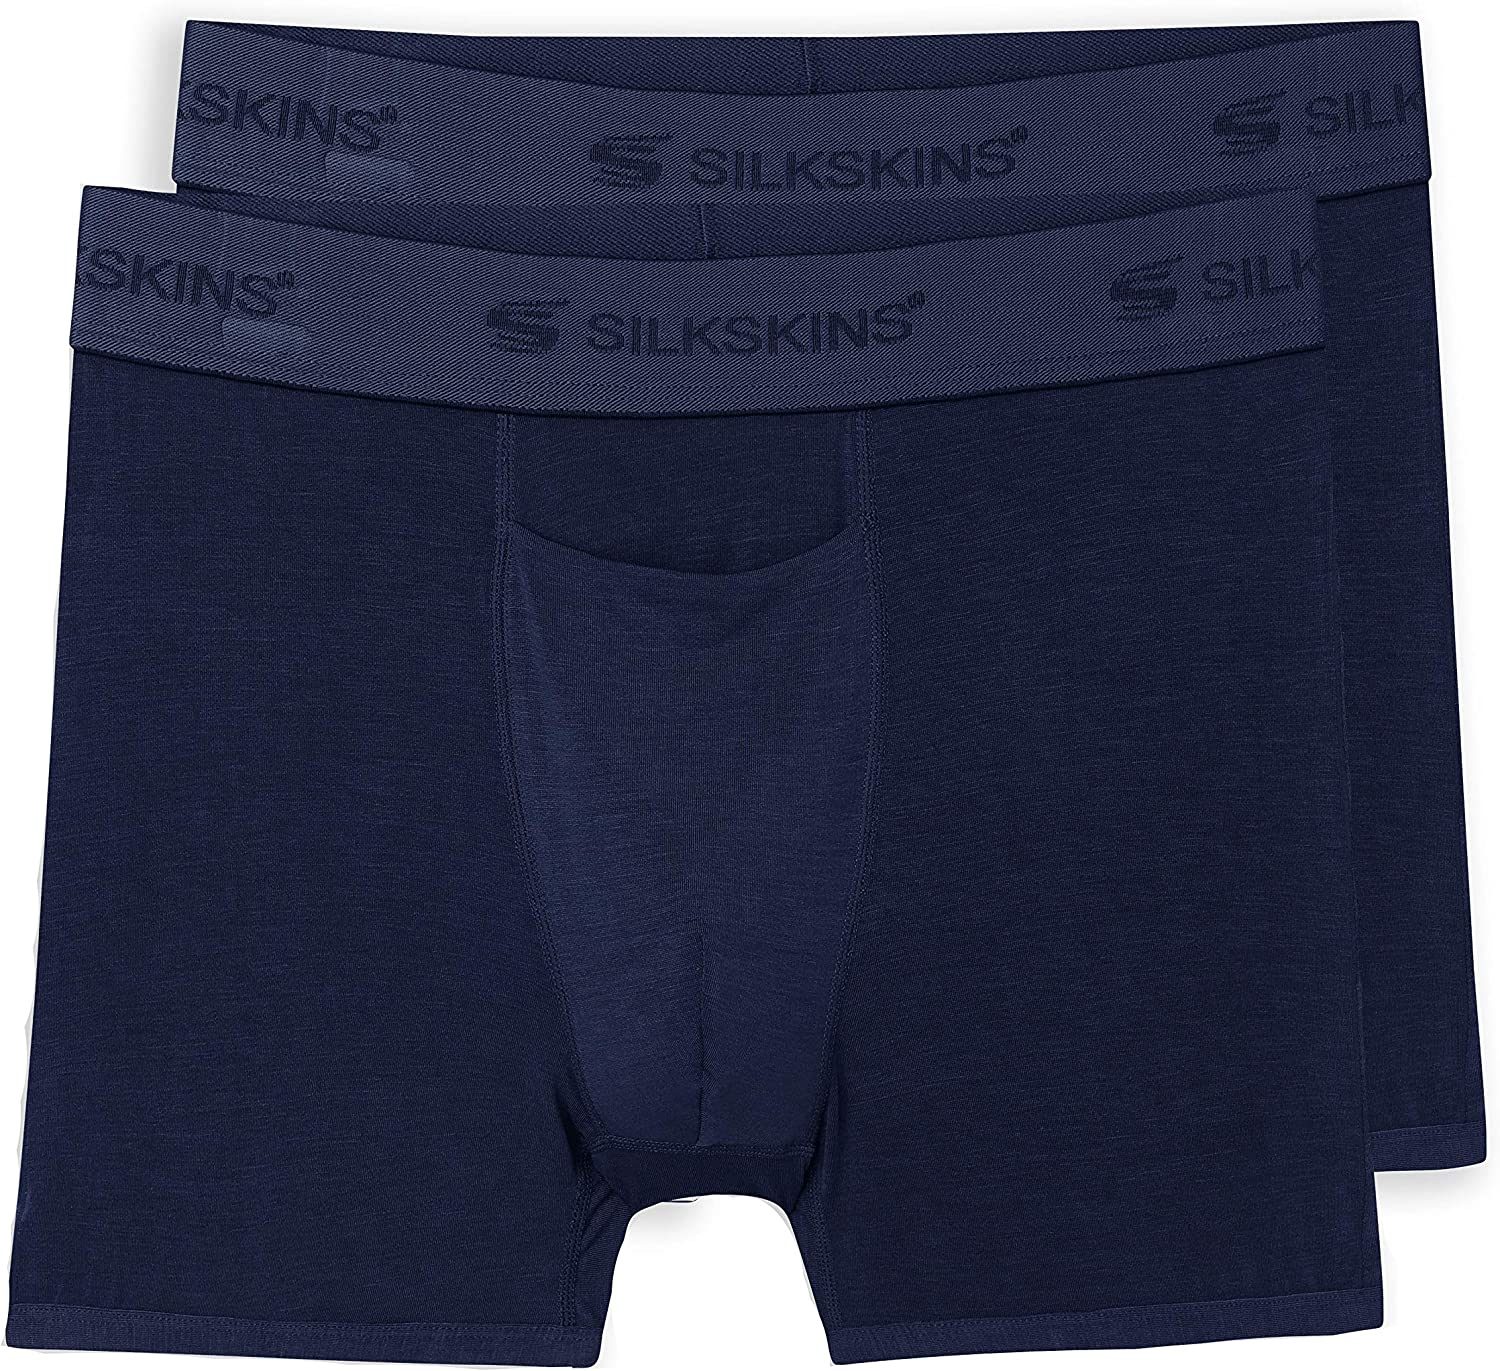 """Terramar mens Silkskins 3"""" Inseam Boxer Briefs With Fly (1 and 2 Pack of Underwear)"""